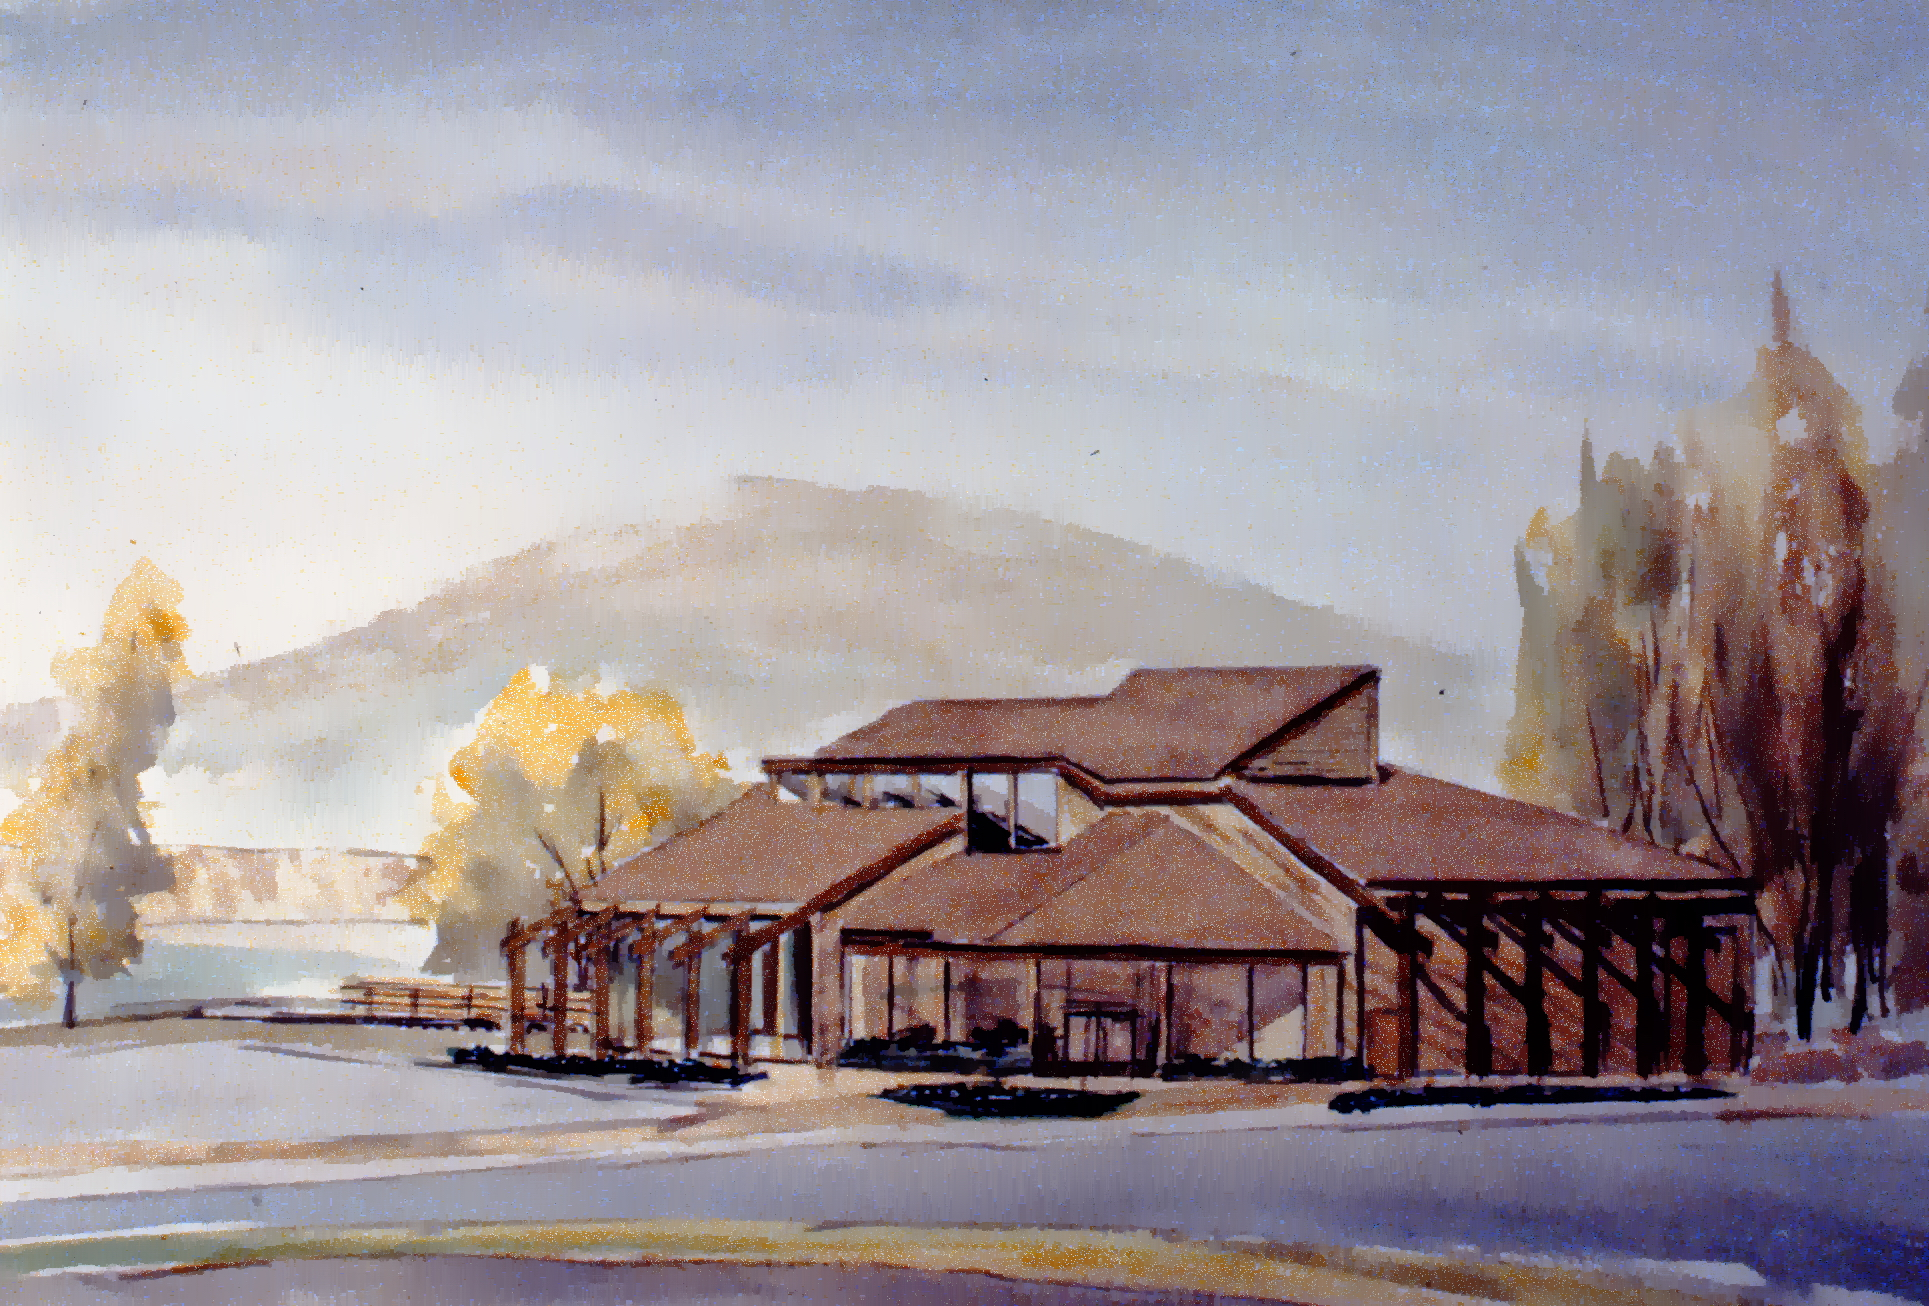 """Art Gallery Building, 1986 , Herb Brittain, watercolour on paper, 14"""" x 22"""", 1986.05.04. Gift of the artist."""